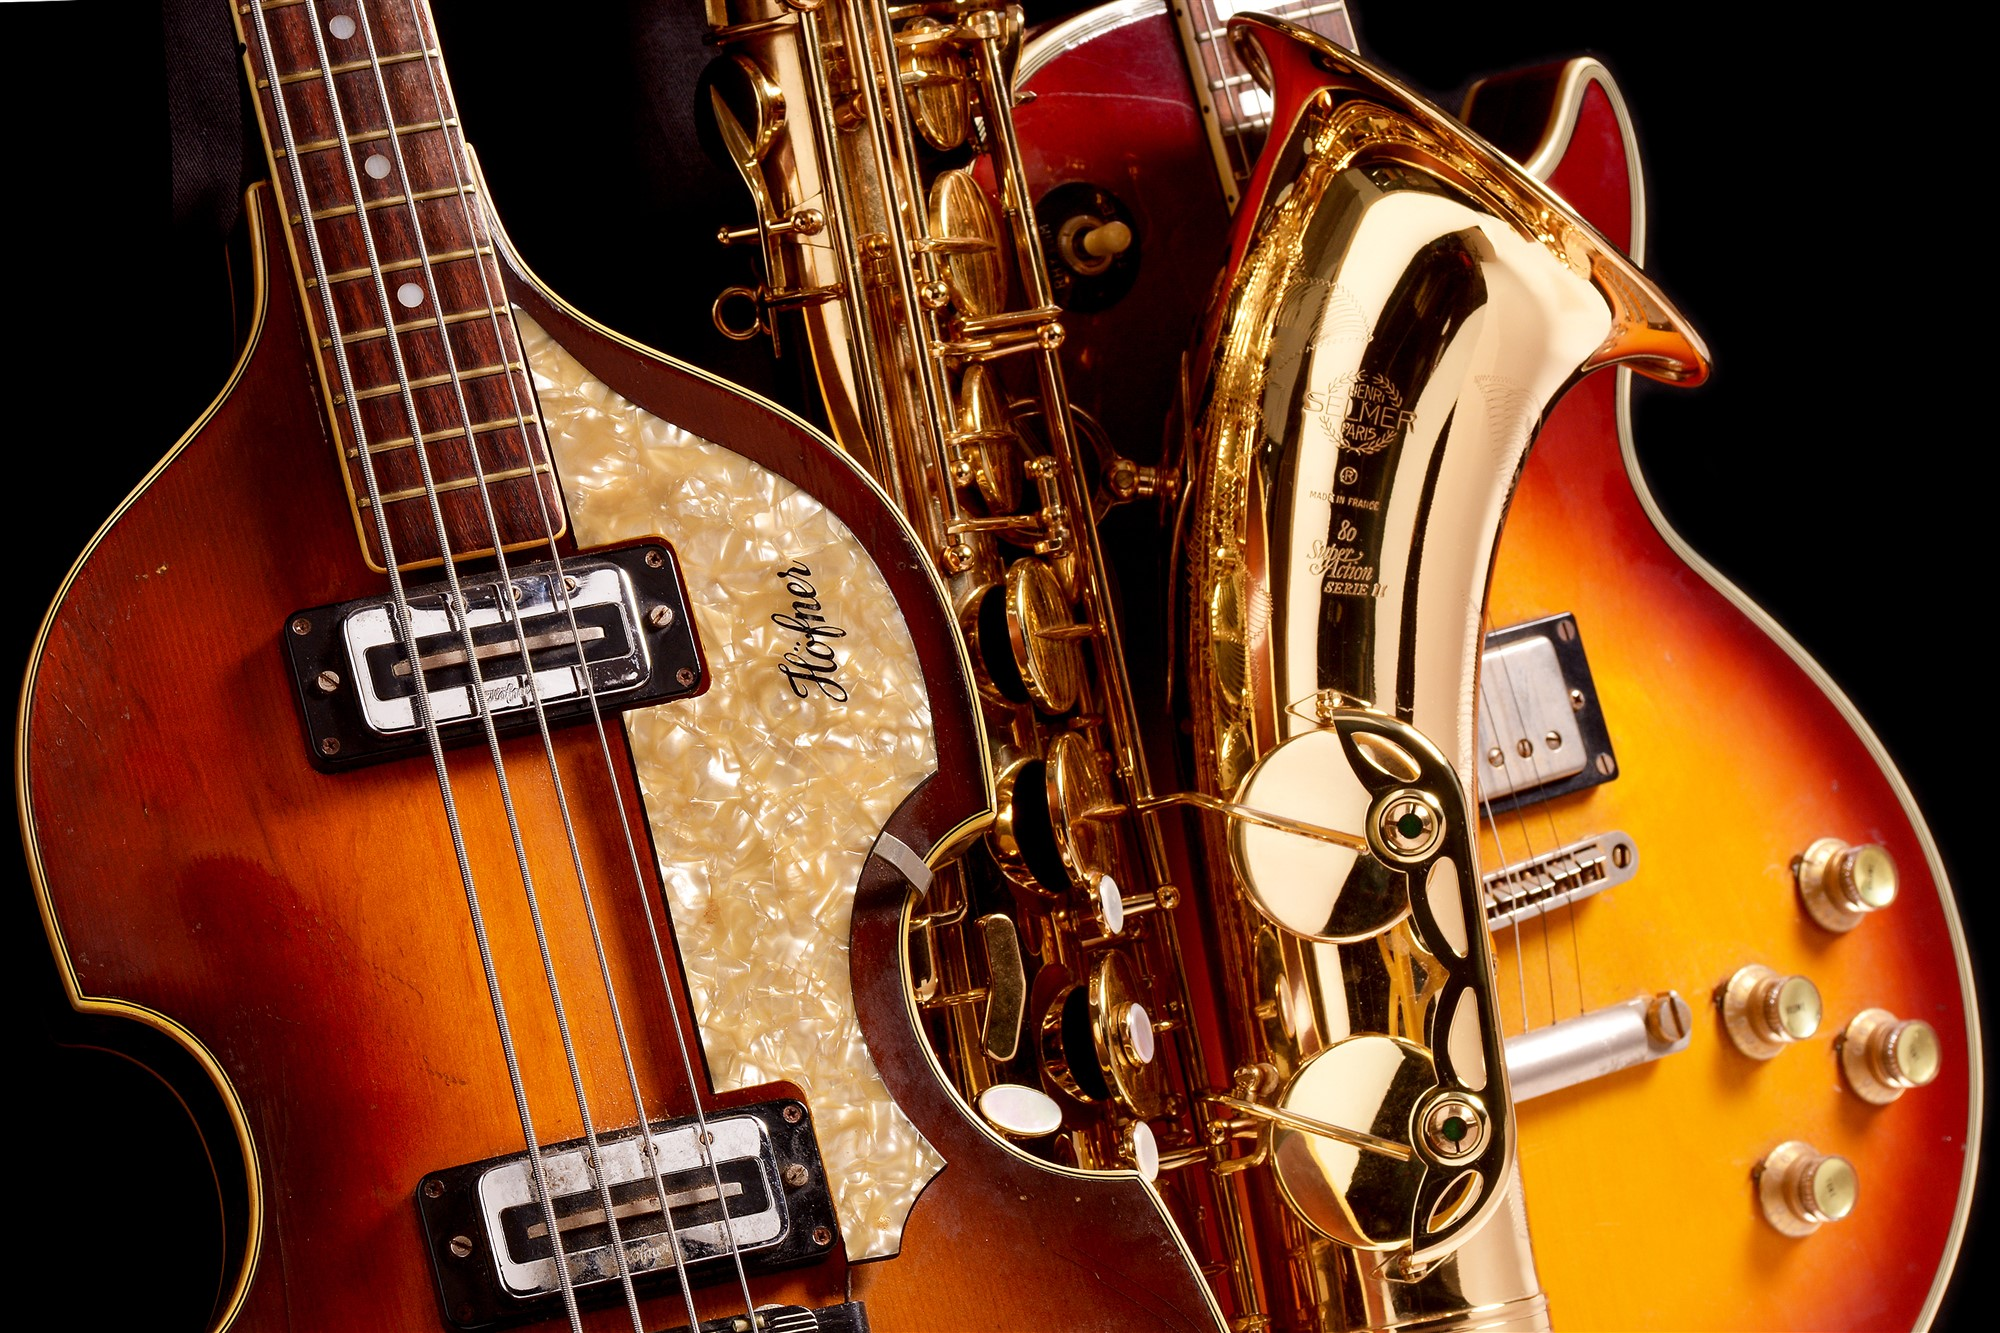 The Musical Instruments Sale